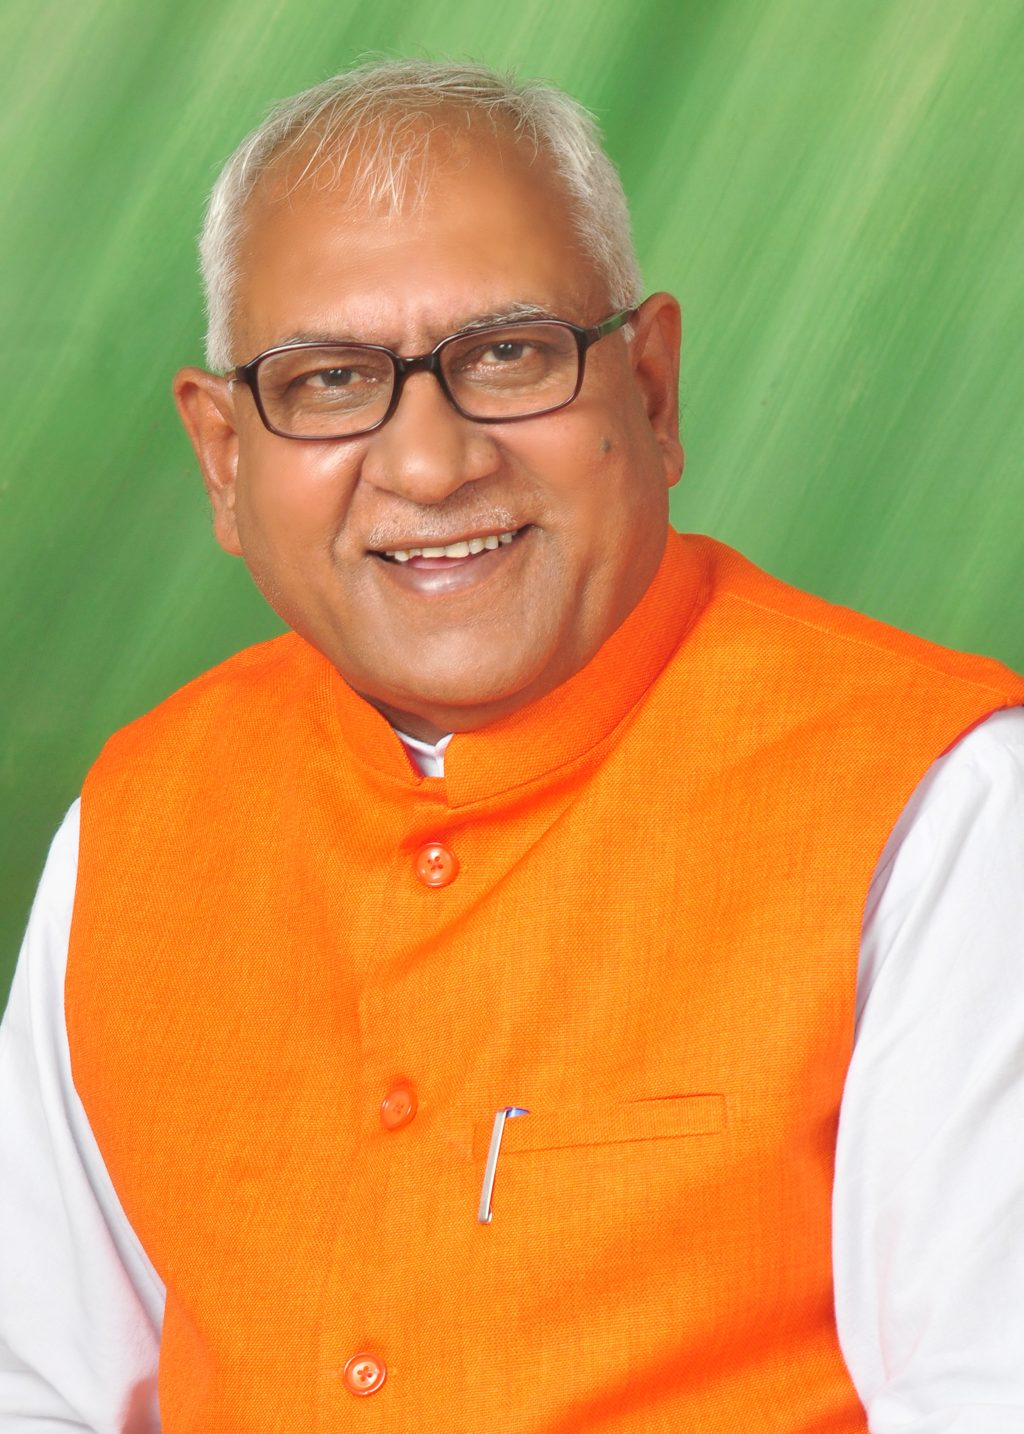 Haryana Minister of State for Social Justice and Empowerment, Sh. Om Prakash Yadav, today